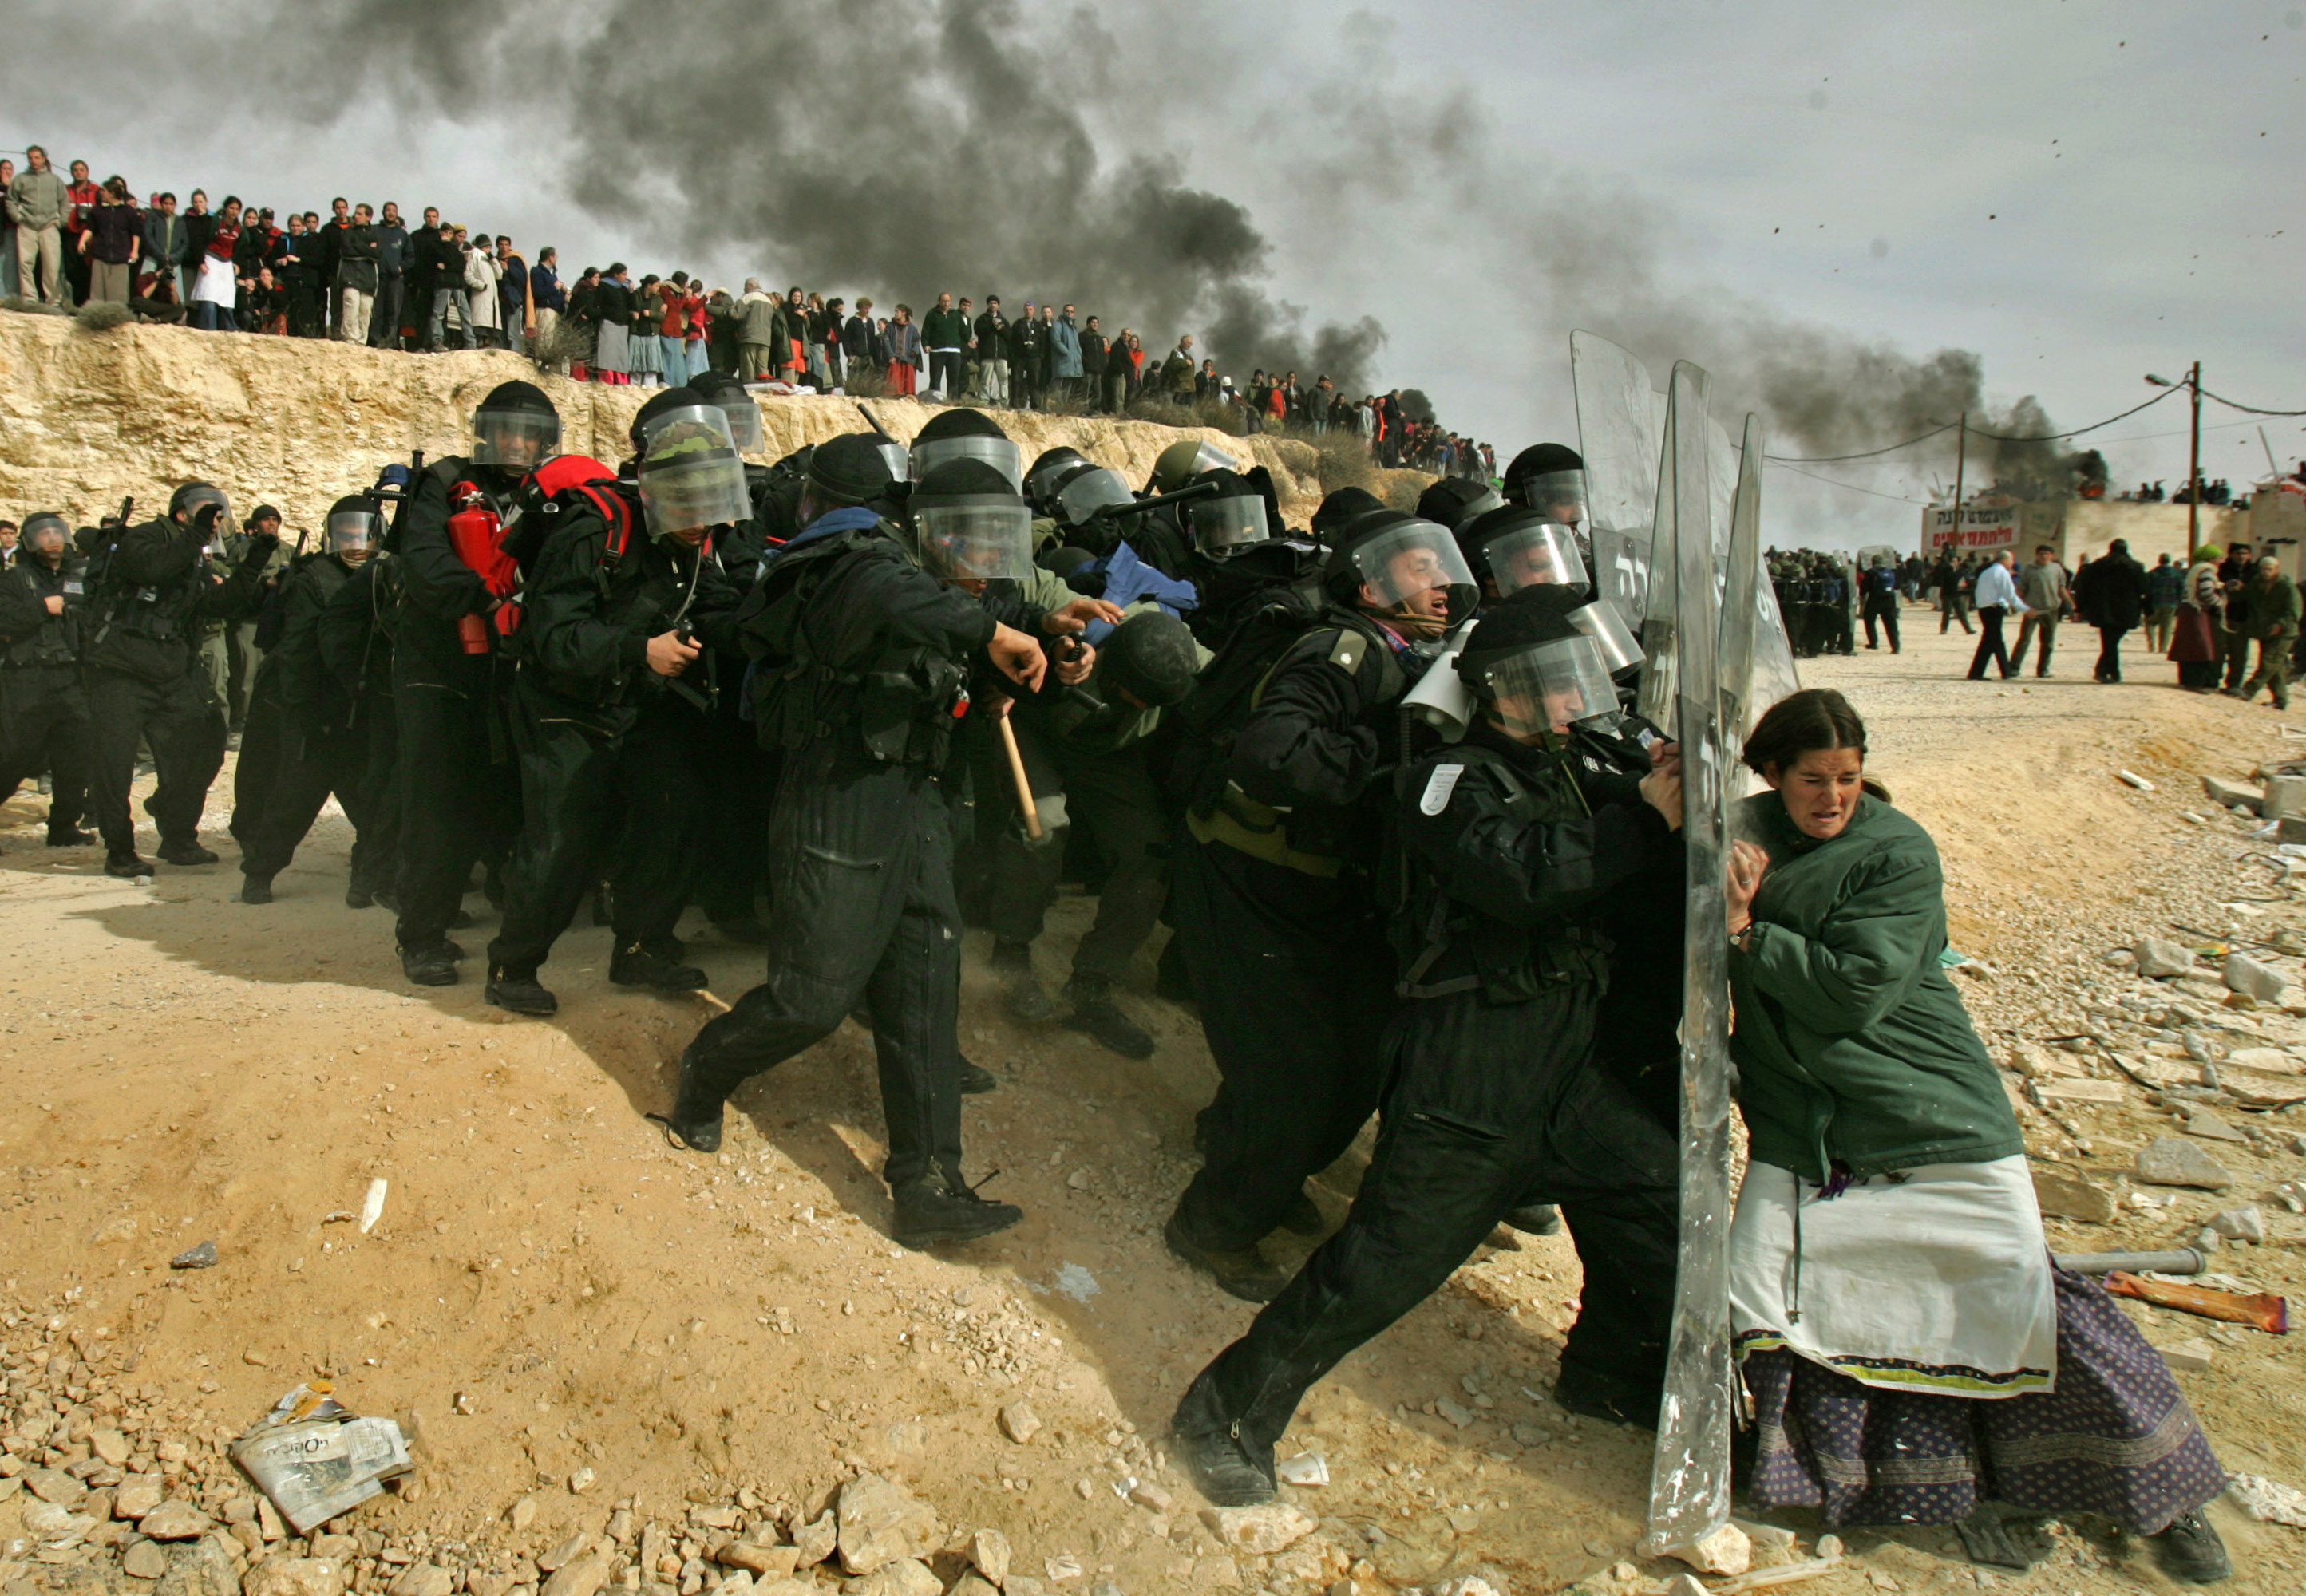 pulitzer prizes won by the  a lone jewish settler challenges i security officers during clashes that erupted as authorities cleared the west bank settlement of amona east of the